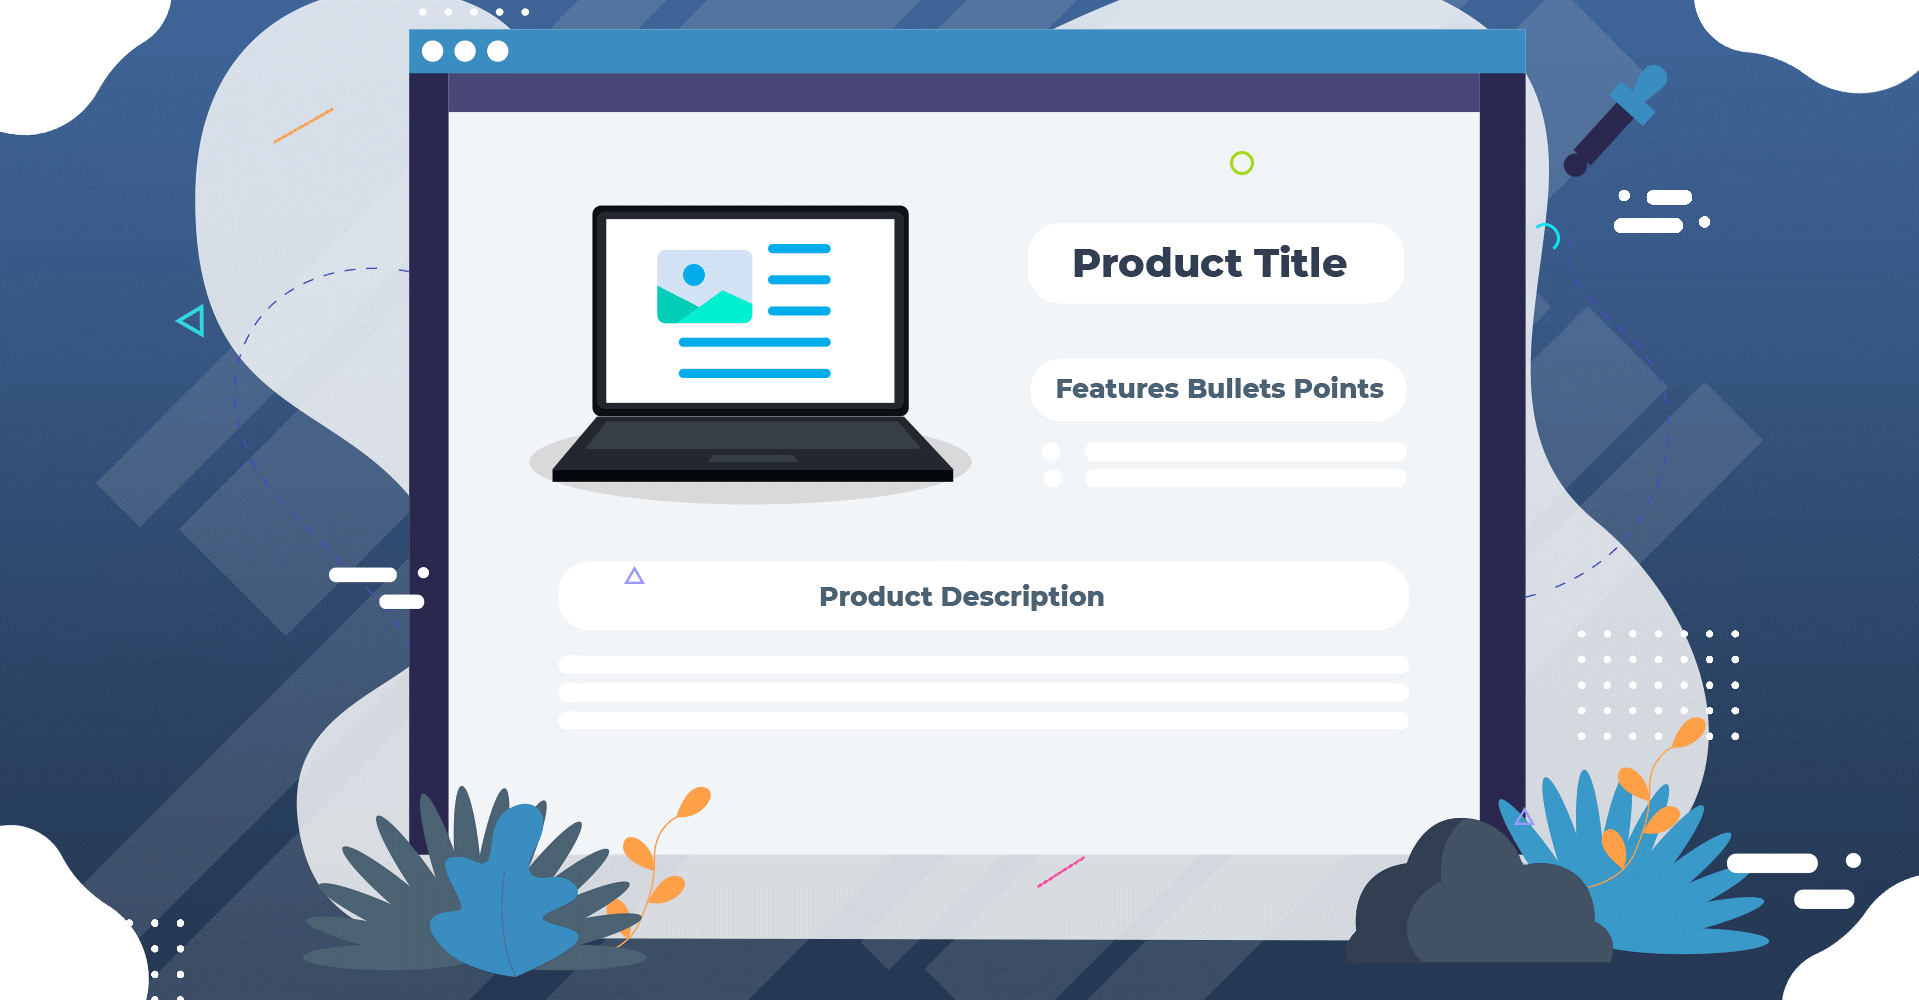 product title